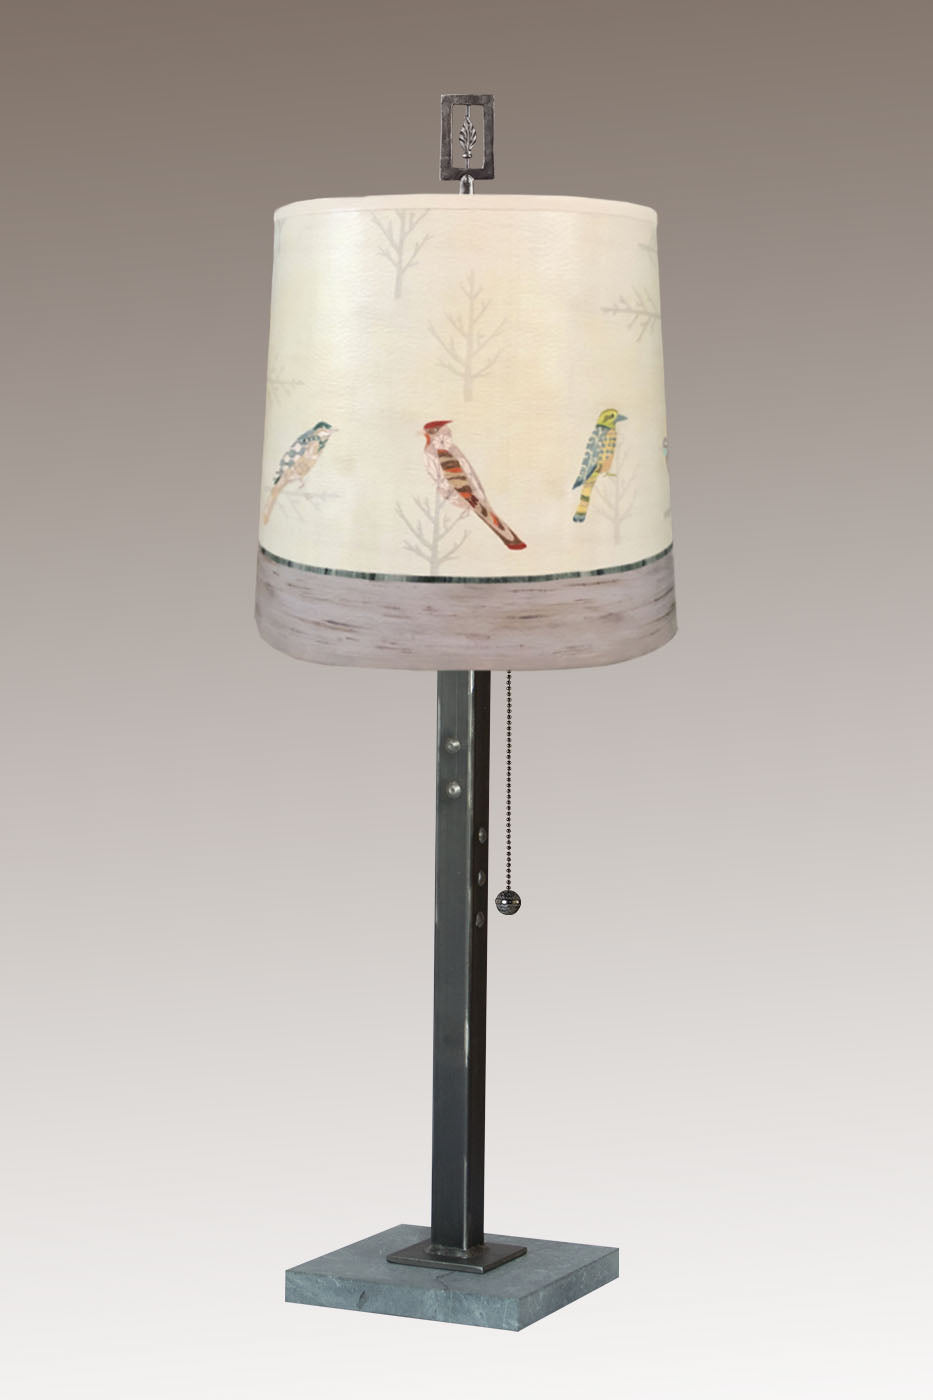 Steel Table Lamp on Marble with Medium Drum Shade in Bird Friends